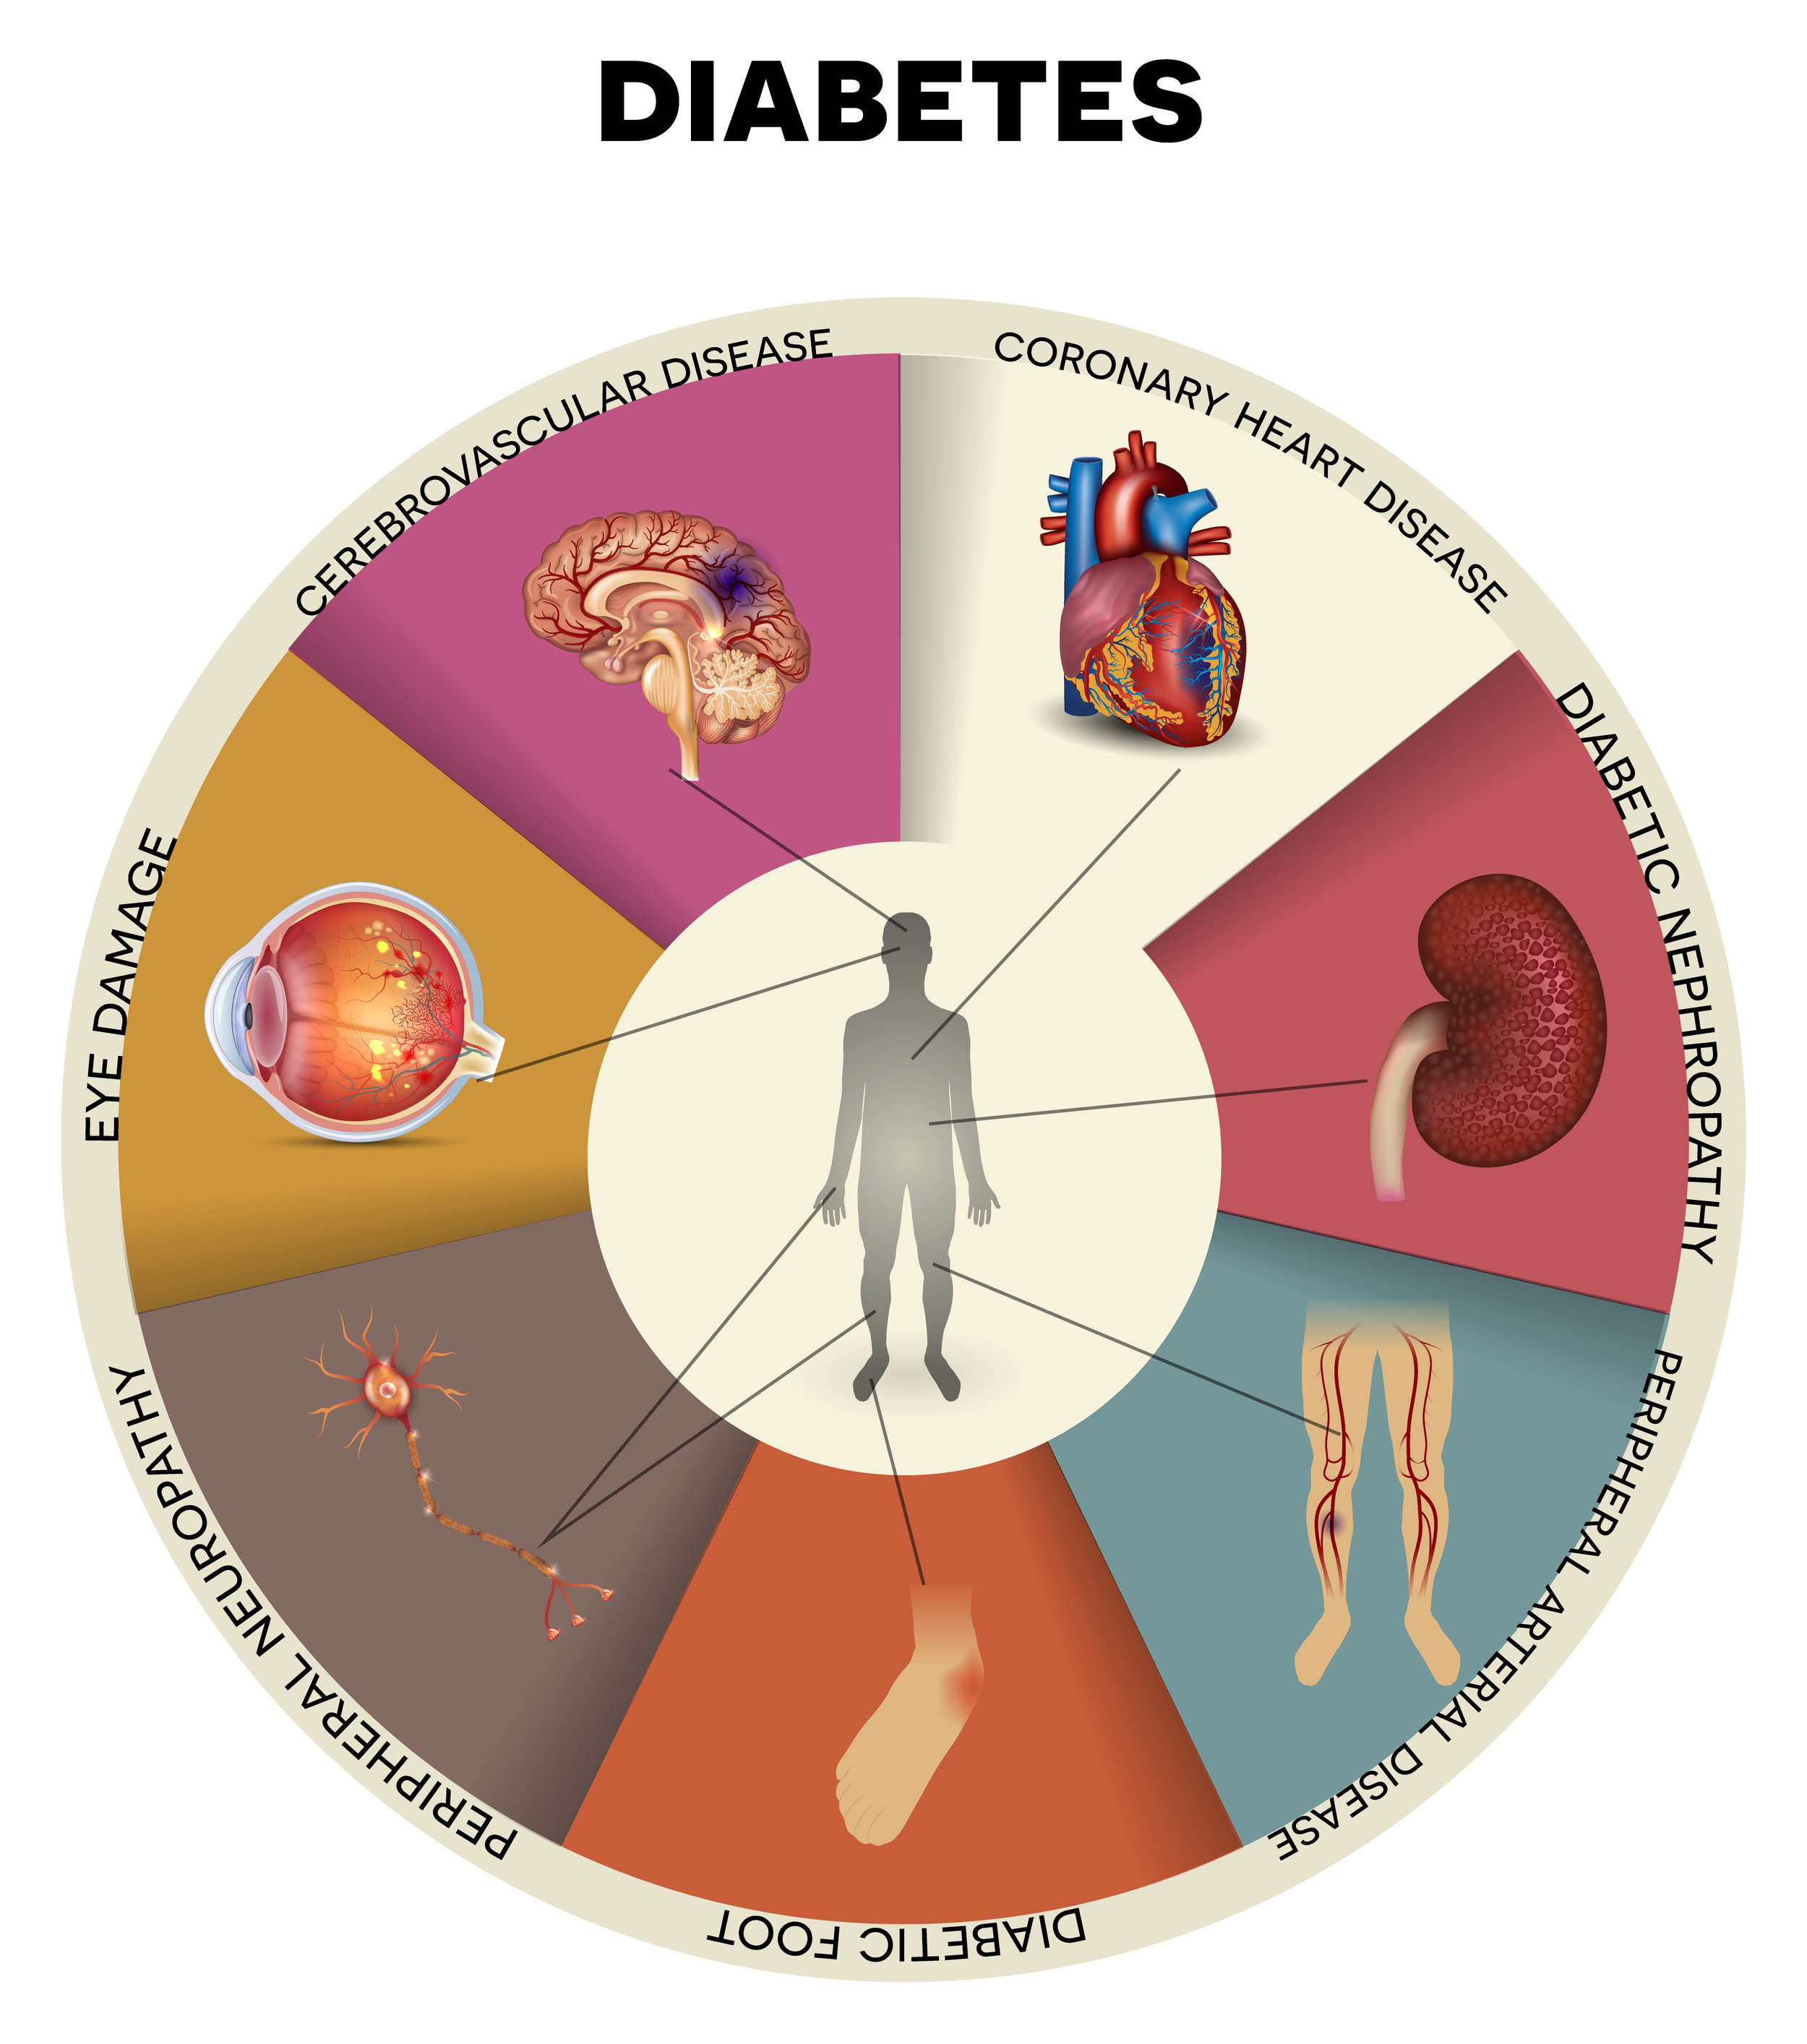 Diabetes medical complication wheel chart